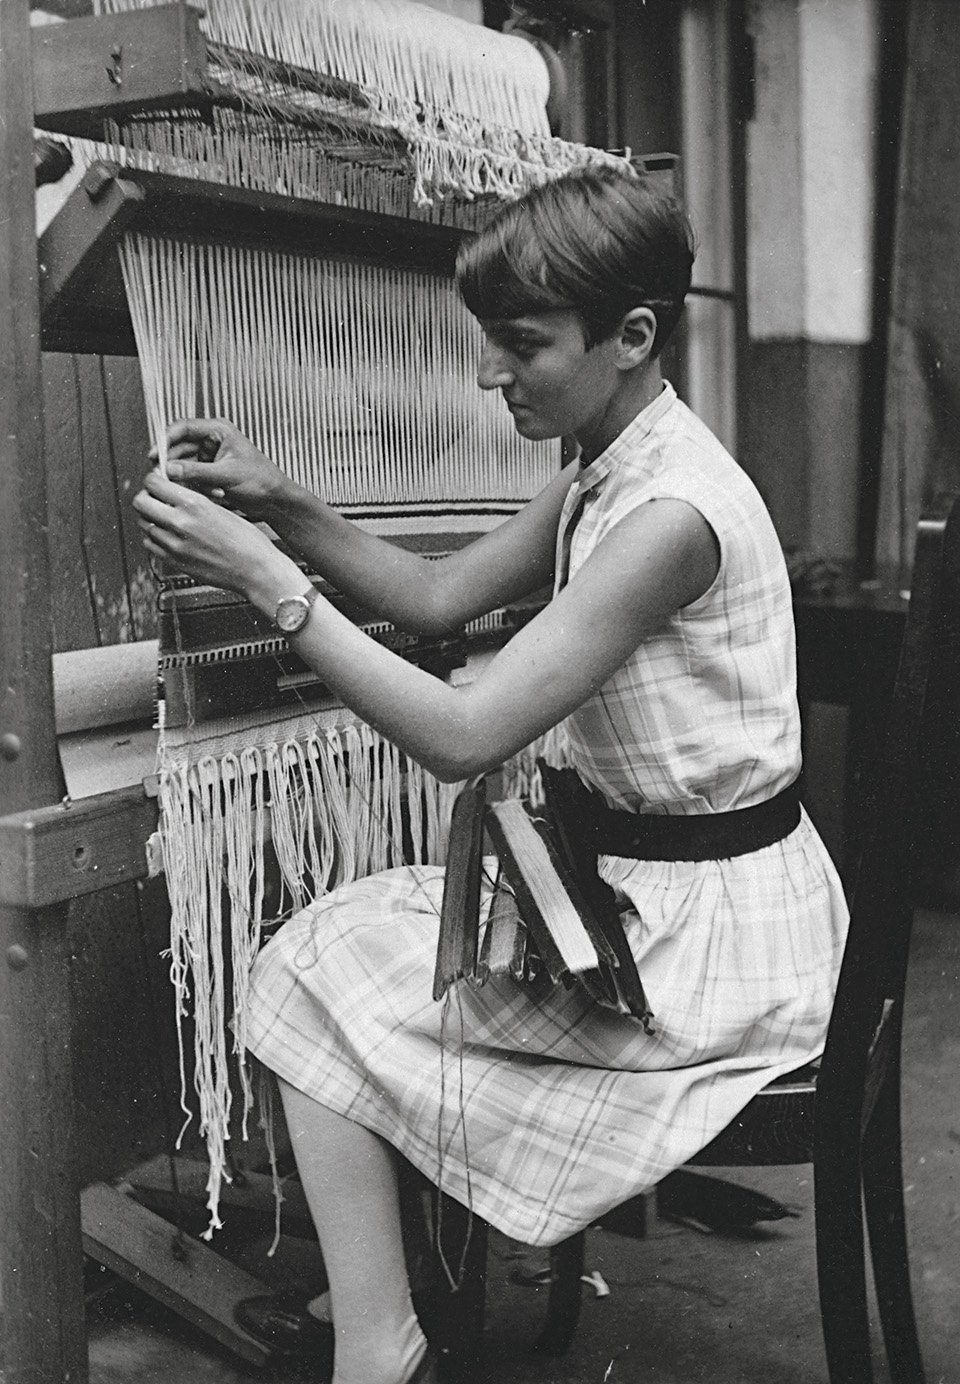 Ruth Consemüller, a textile design artist at the Bauhaus, works at the loom in a dress made of fabric woven by herself, c. 1931